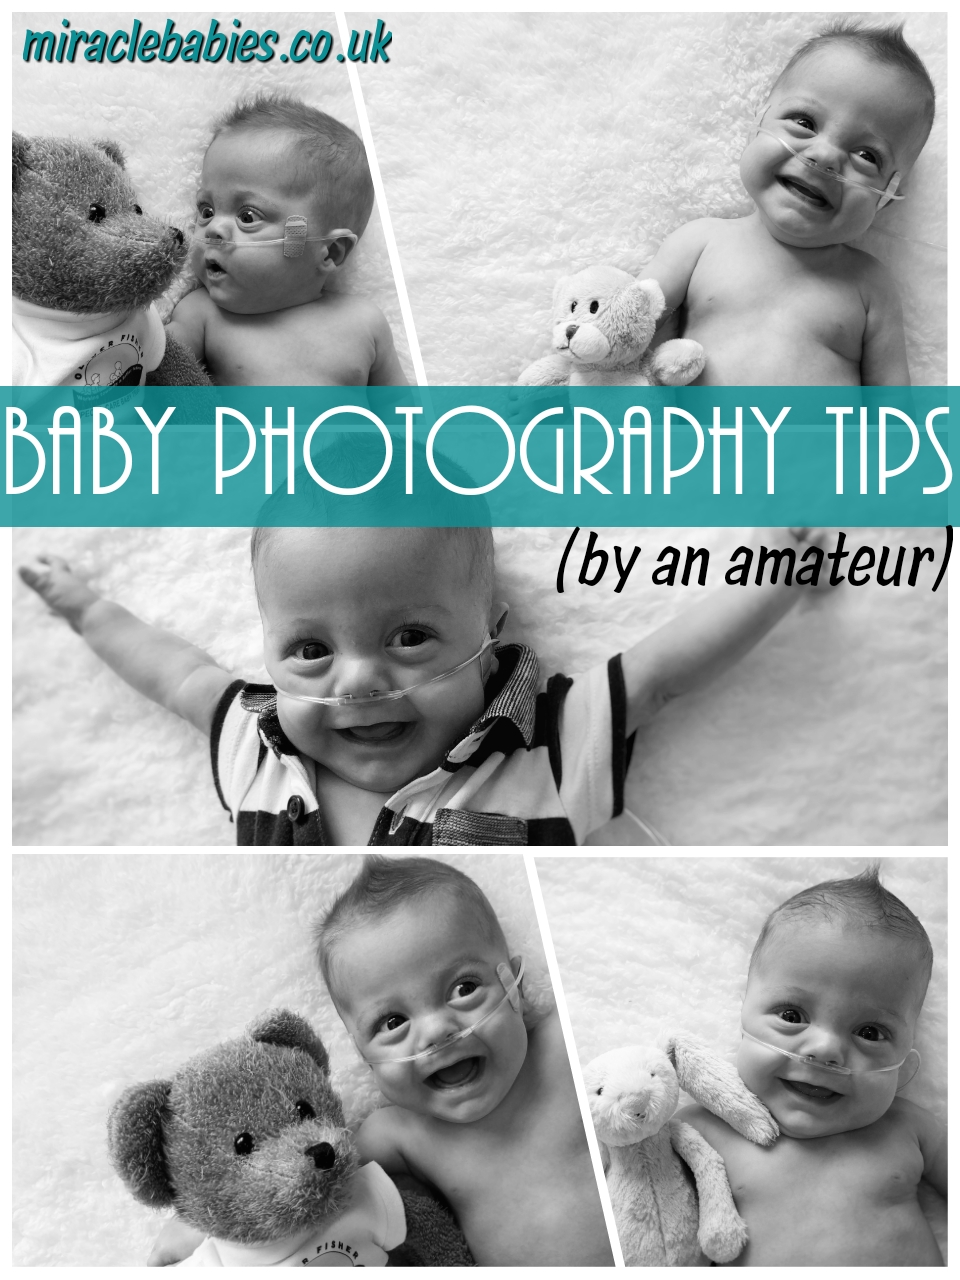 Baby Photography tips (by an amateur)